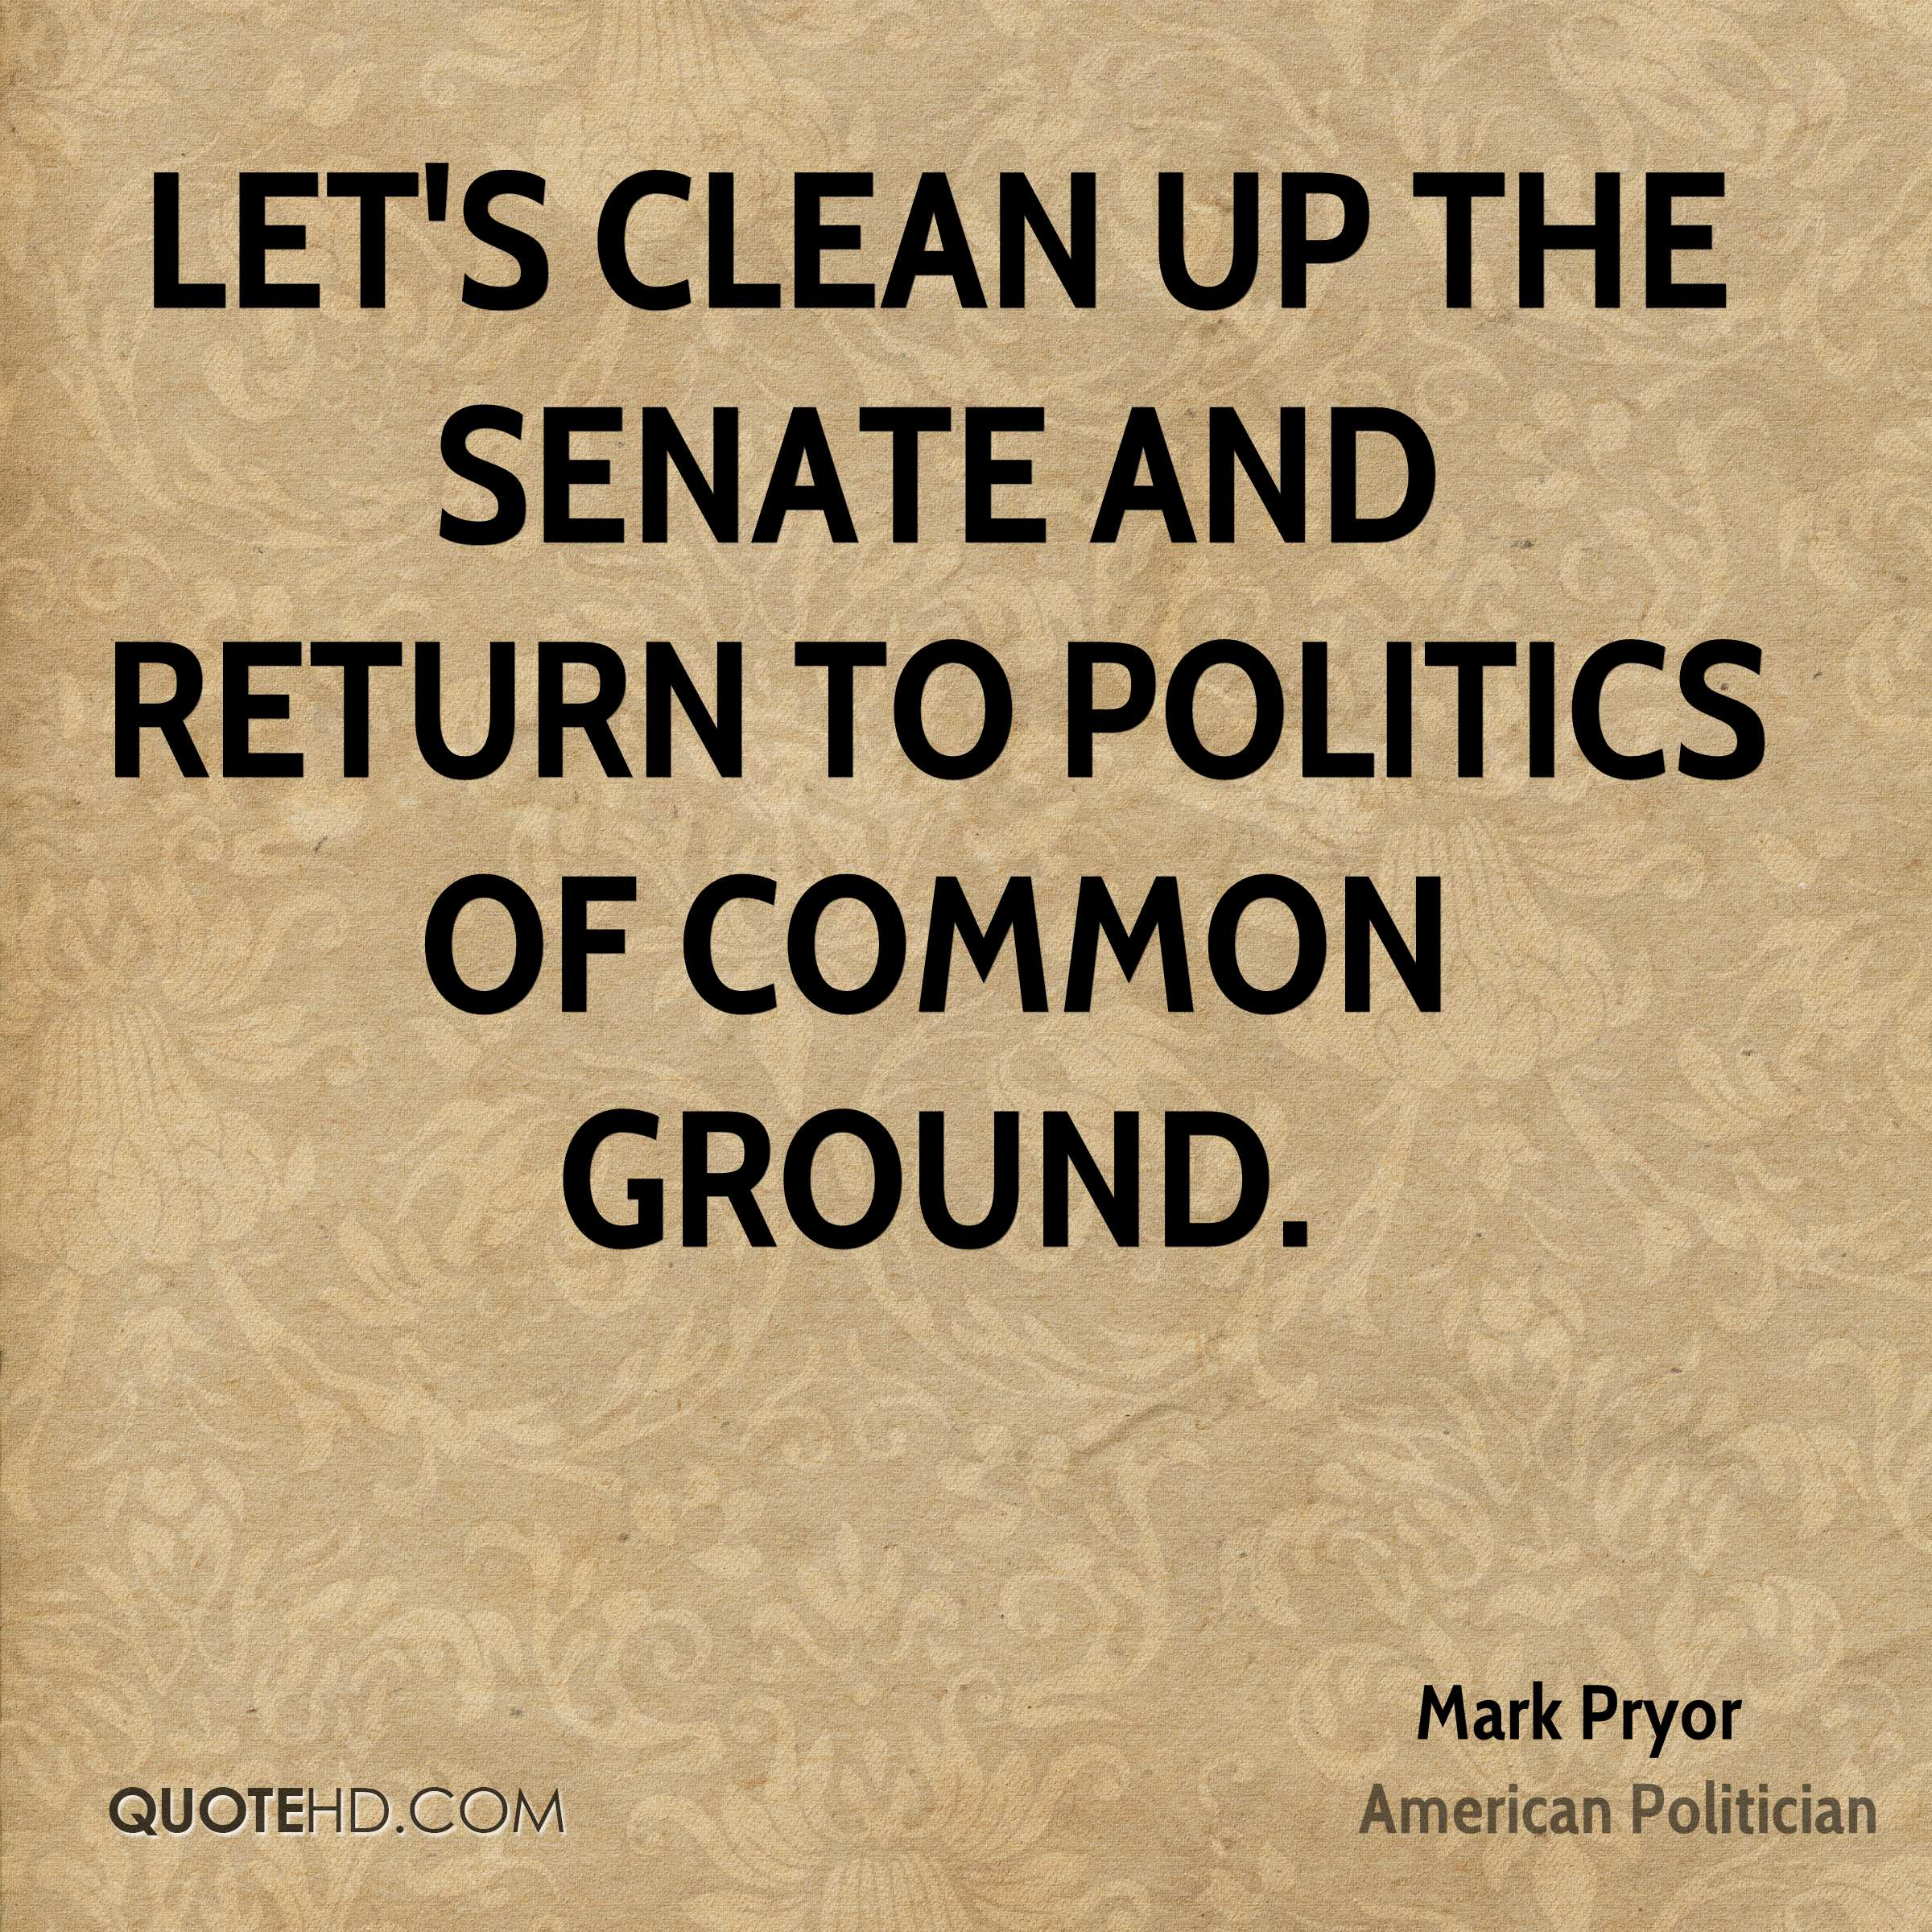 Let's clean up the Senate and return to politics of common ground.